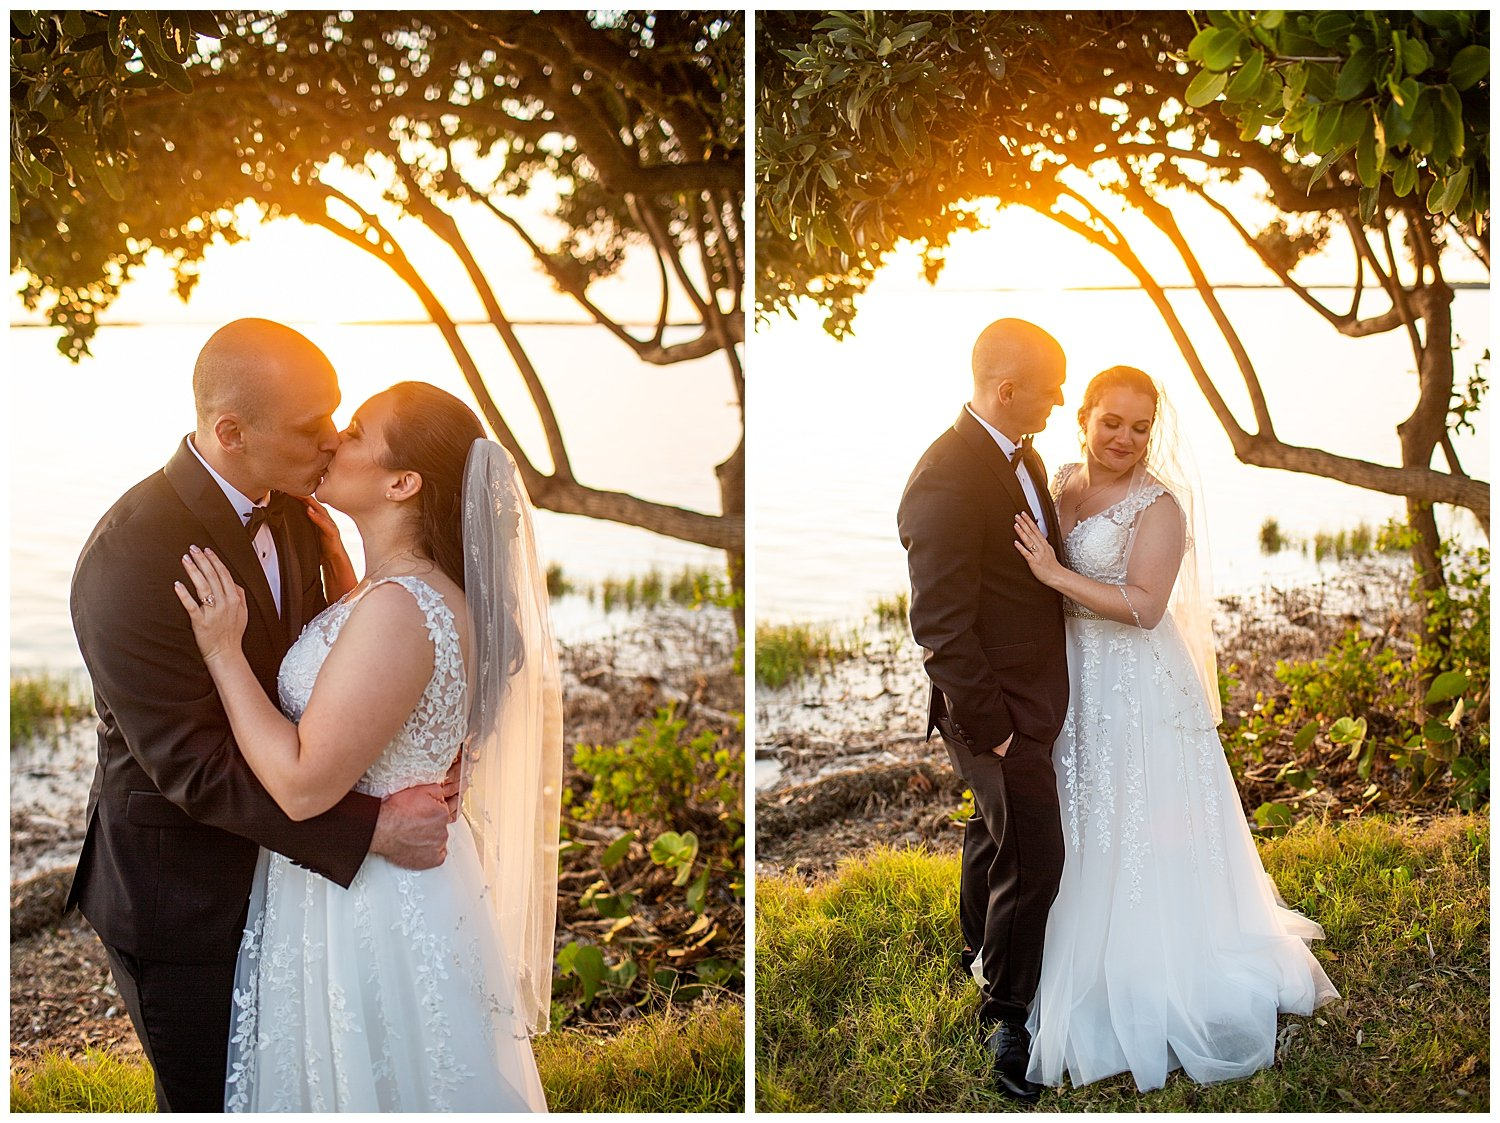 elopement photographer tampa bay fl